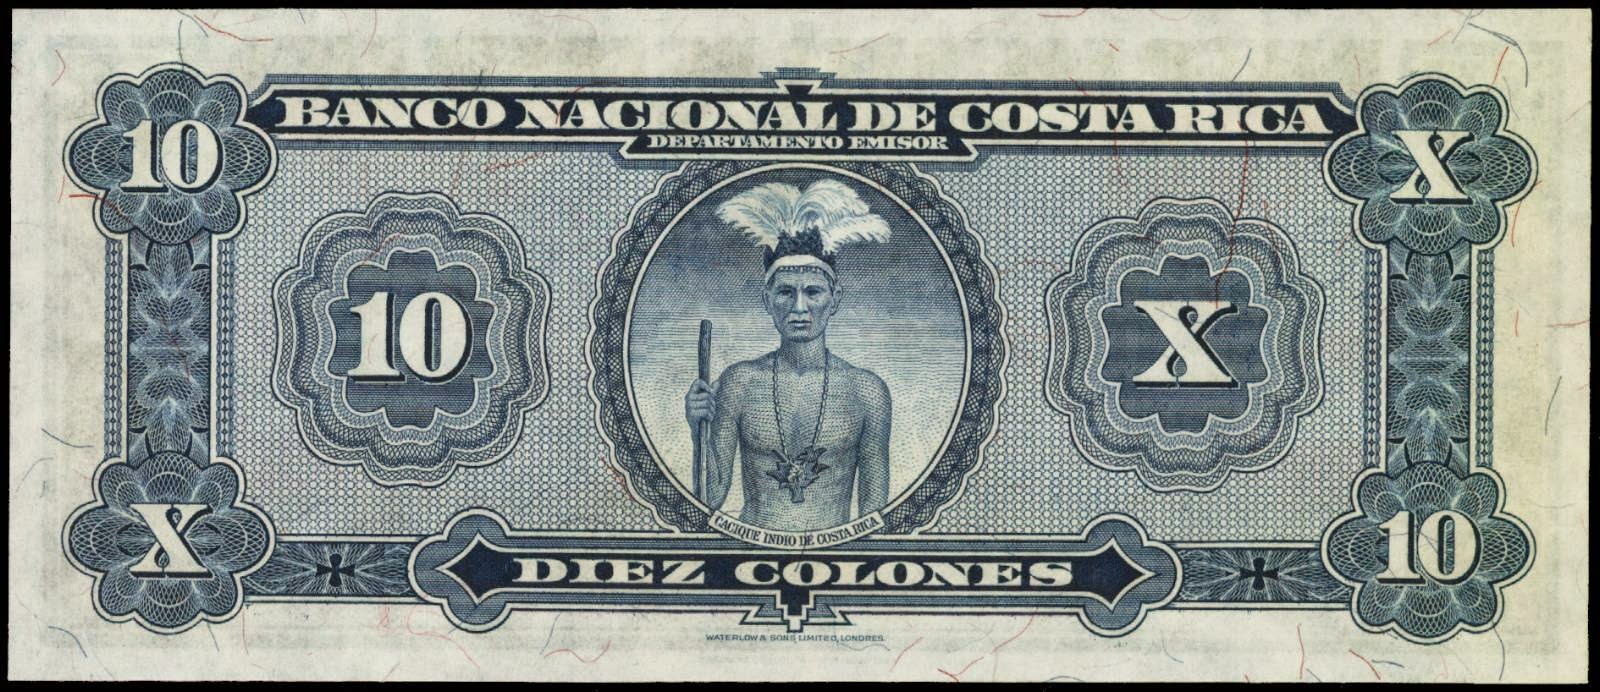 Currency of Costa Rica 10 Colones banknote 1940 Indian chief